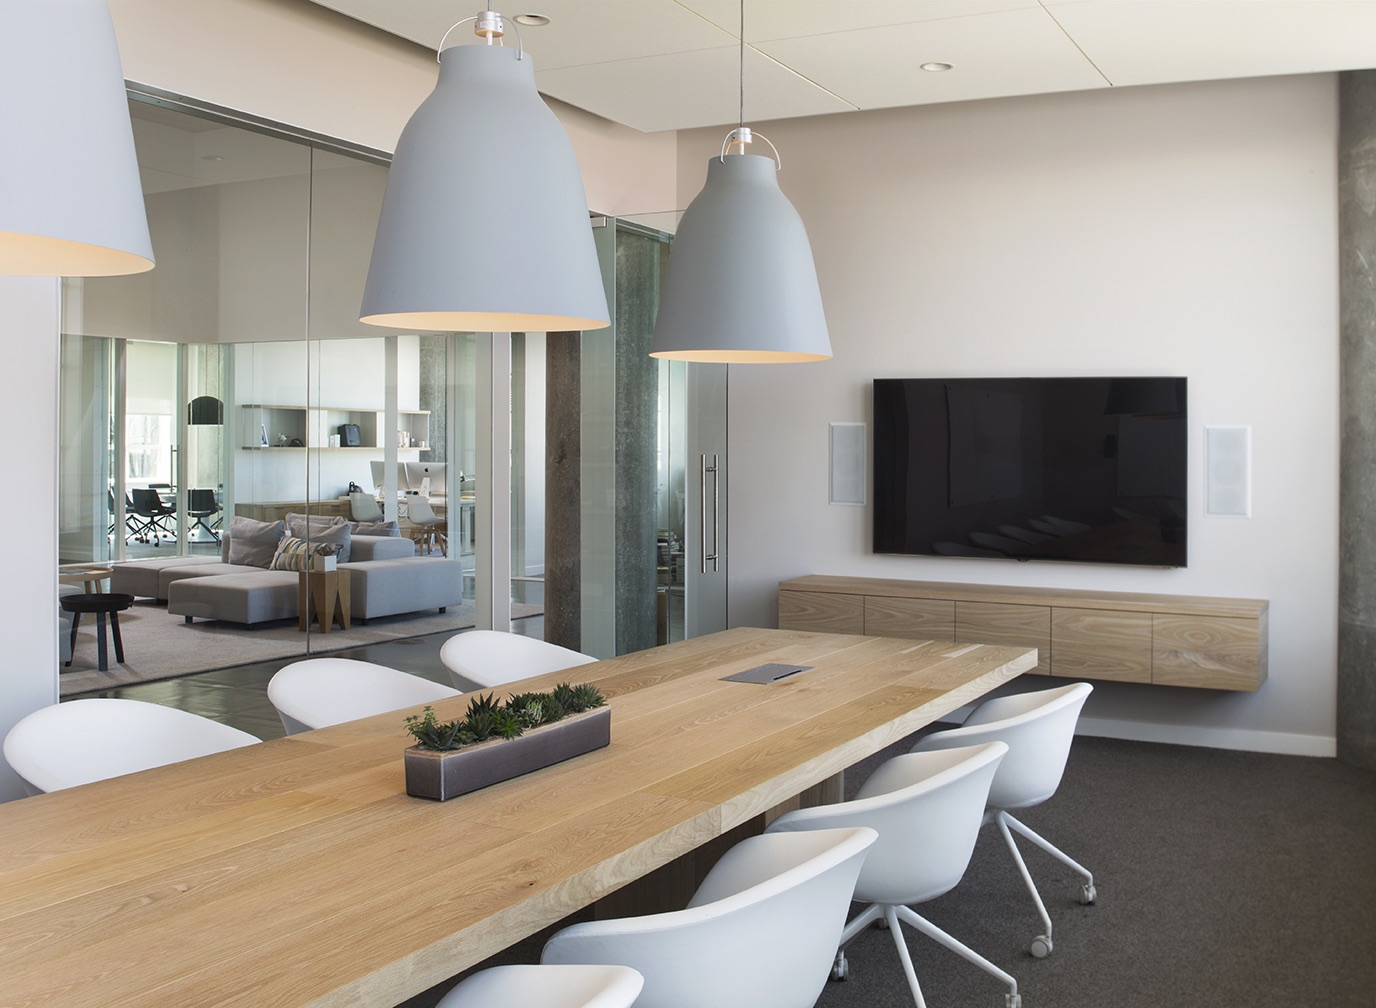 investment-firm-san-francisco-office-14